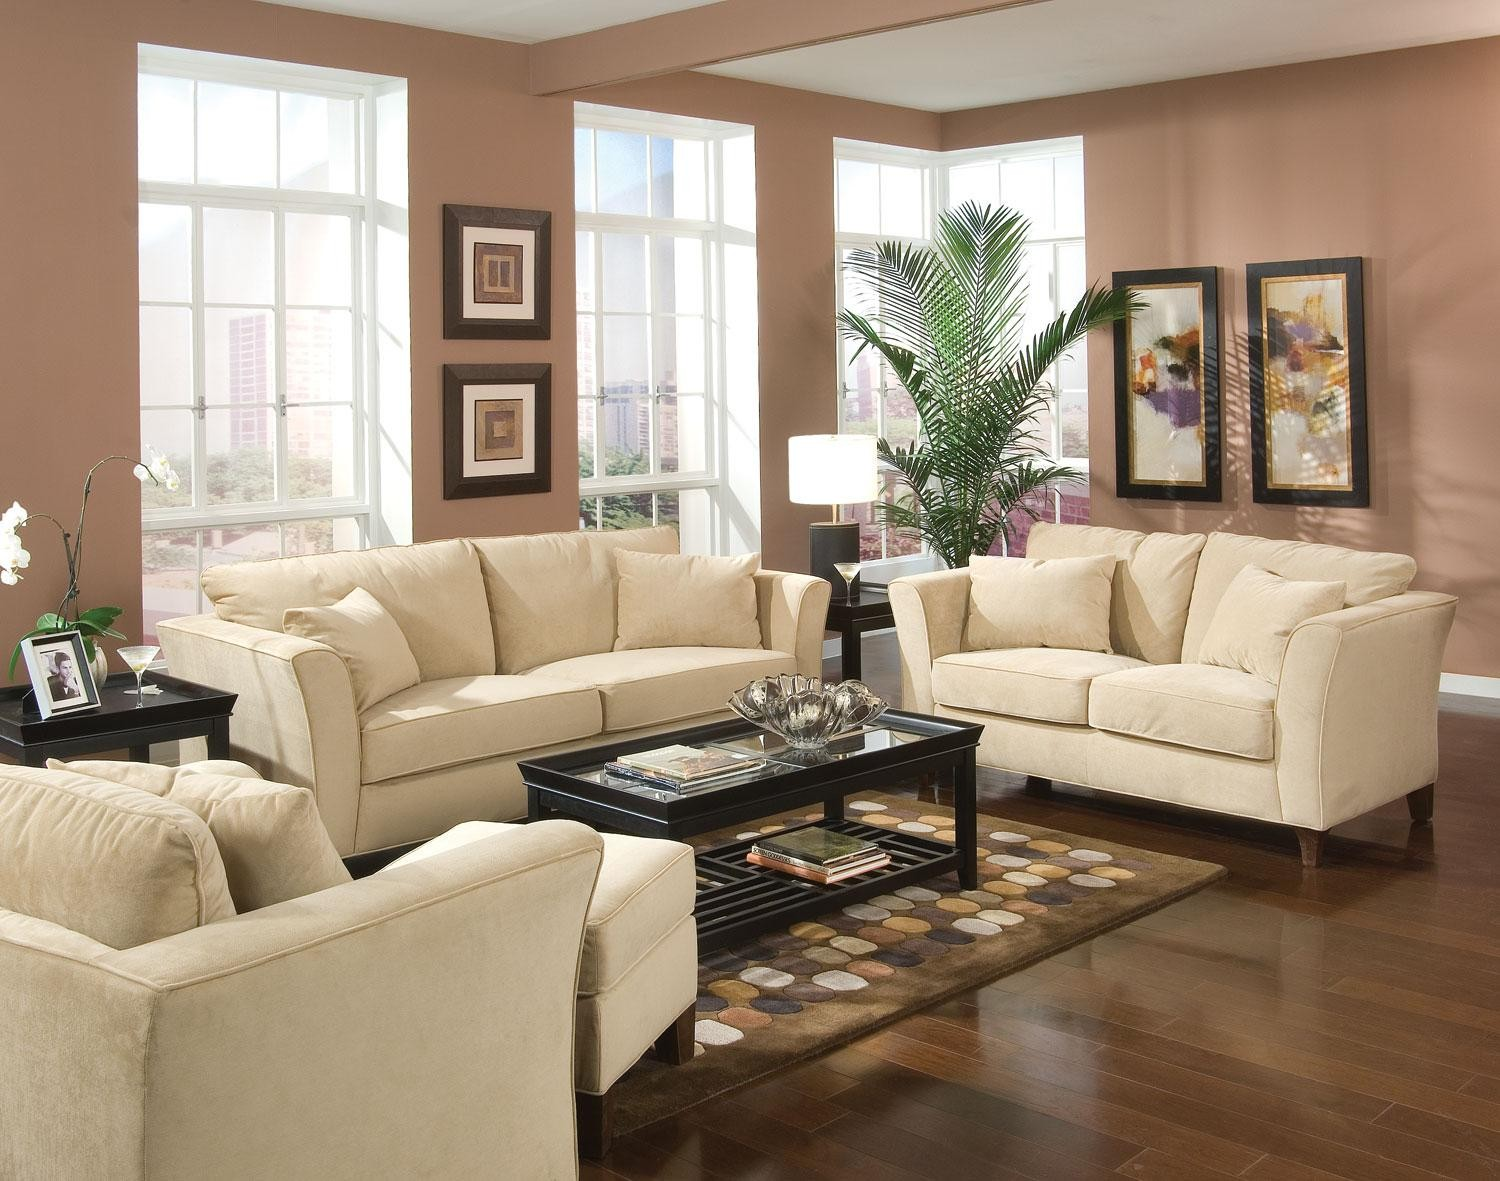 Park Place Cream Living Room Set - 500231 from Coaster (500231 ...